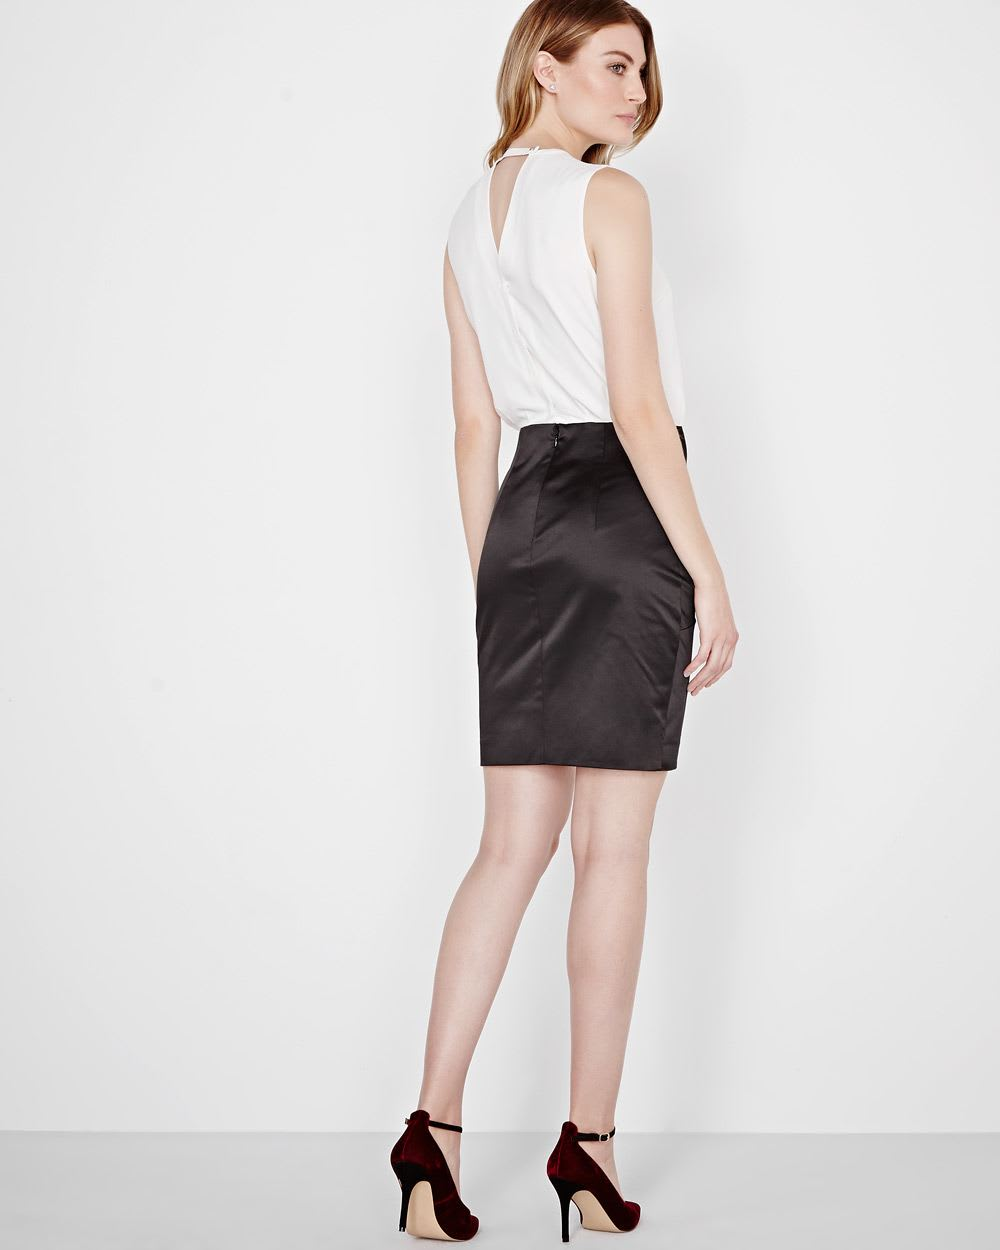 73c9b6b7b21 Black and White Crepe and Satin Fitted Dress